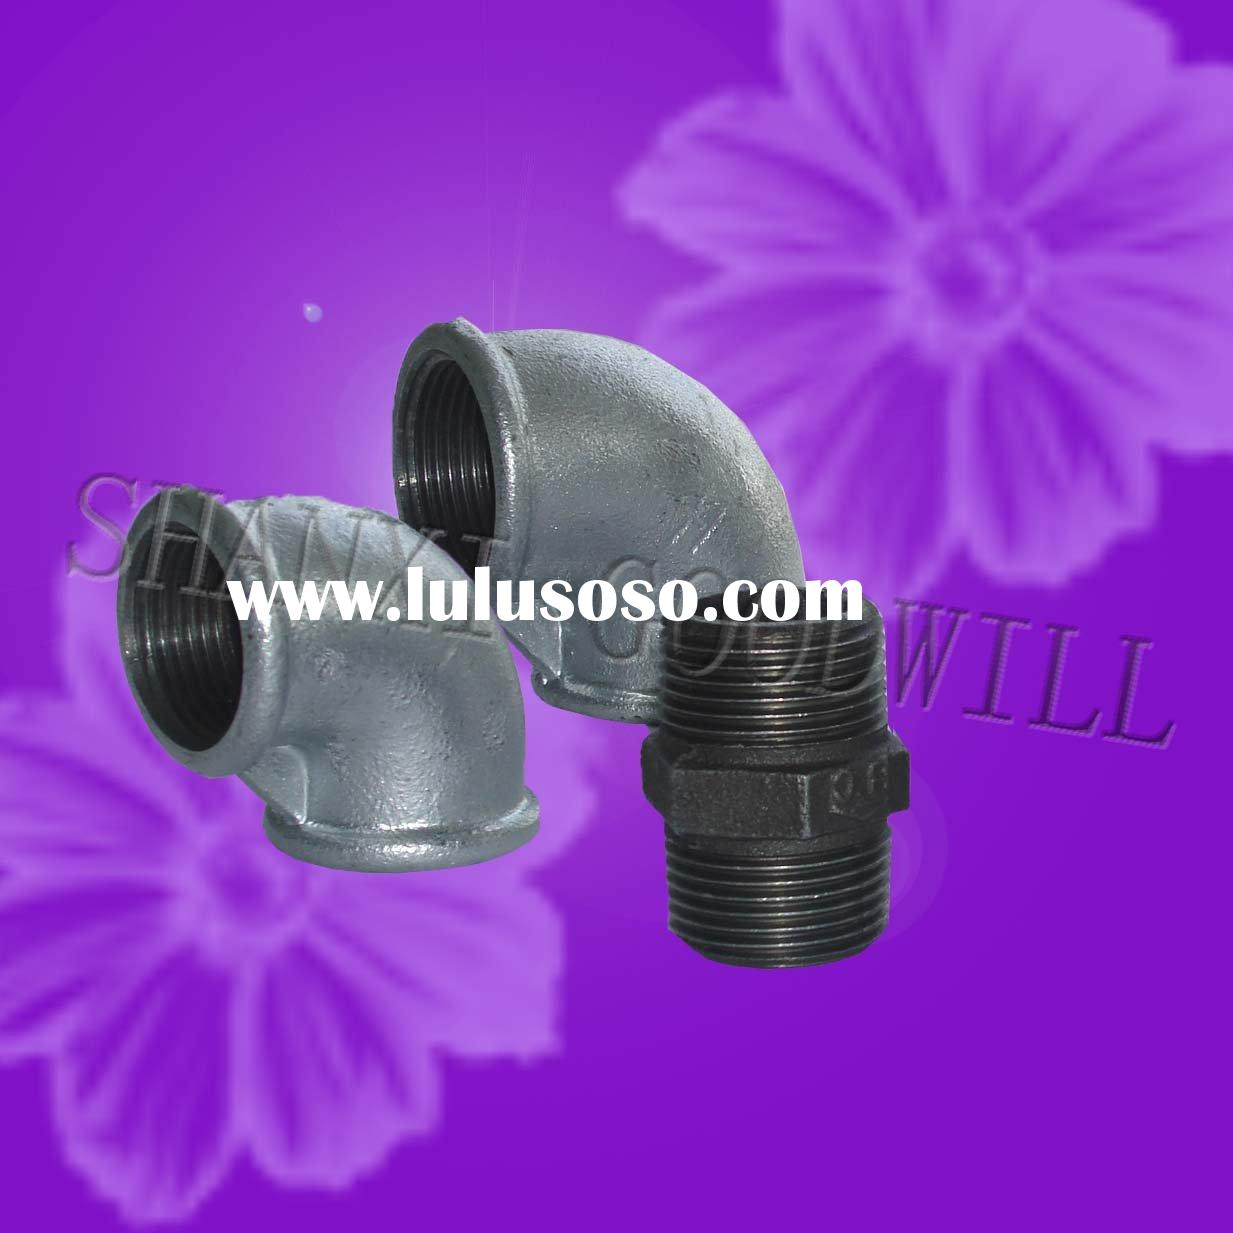 galvanized/black malleable iron cast pipe fittings